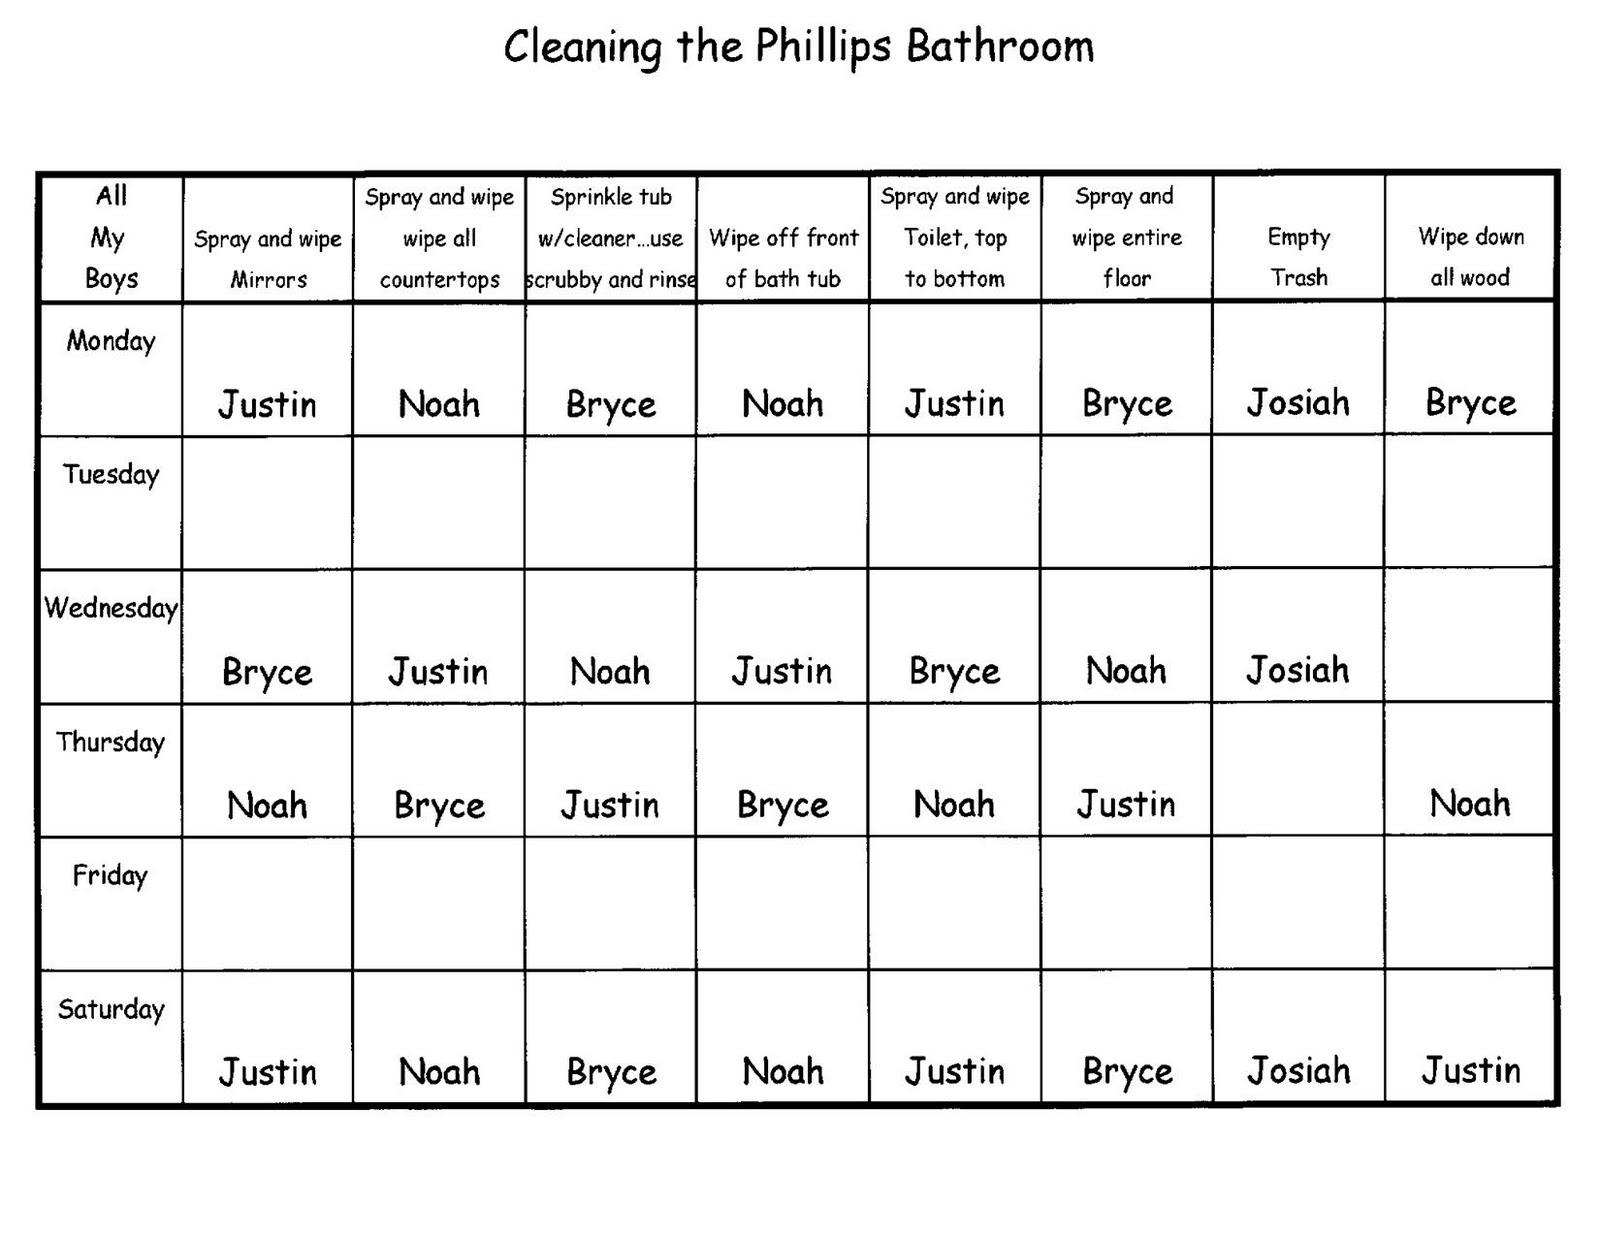 Free Restroom Cleaning Log Best Images Of Chart Public Restroom Cleaning  Log Related Keywords Suggestions With Toilet Checklist Sample